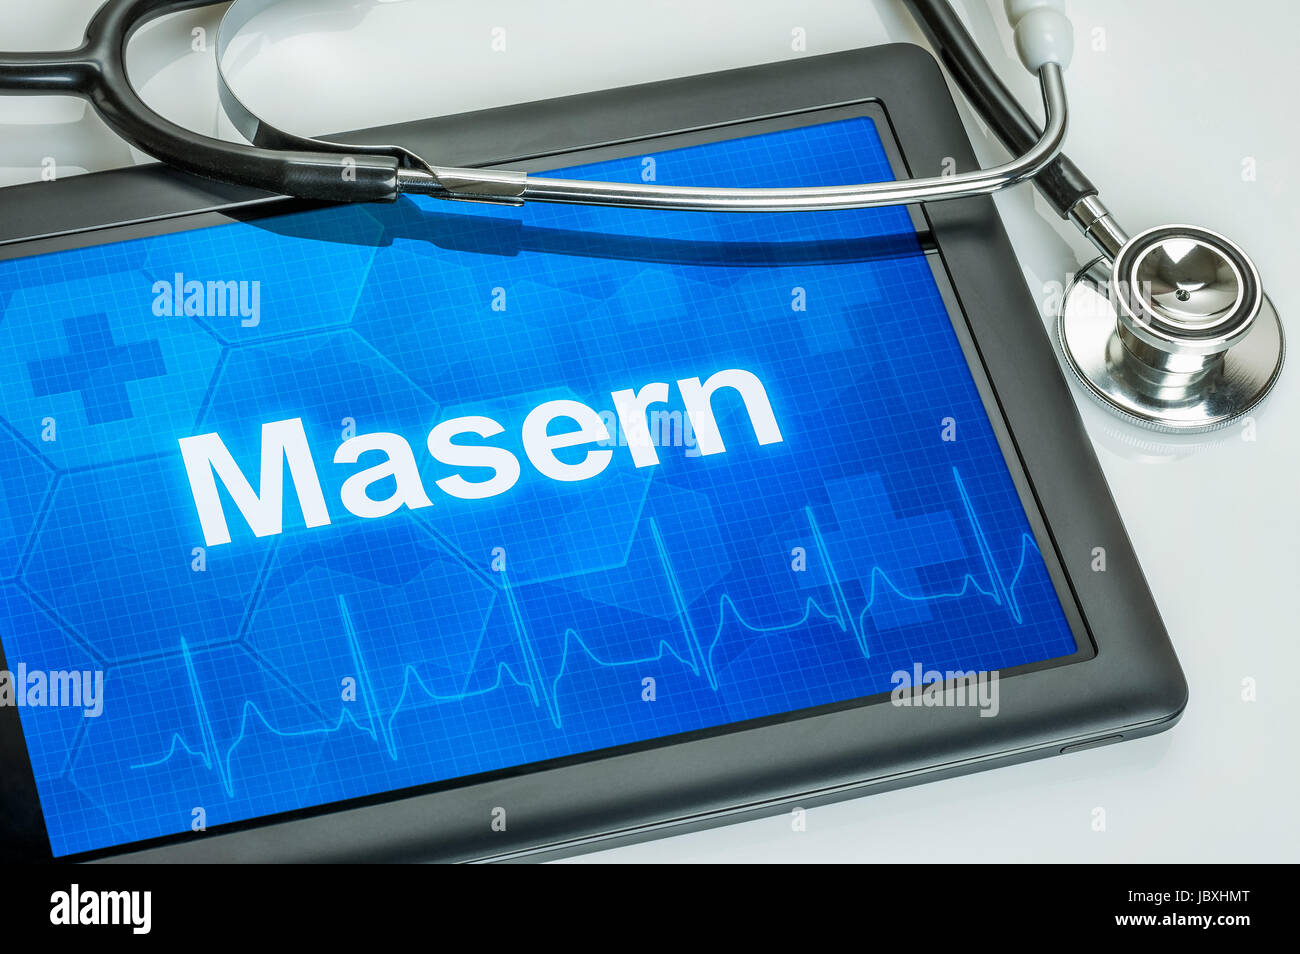 Tablet mit der Diagnose Masern auf dem Display Stock Photo